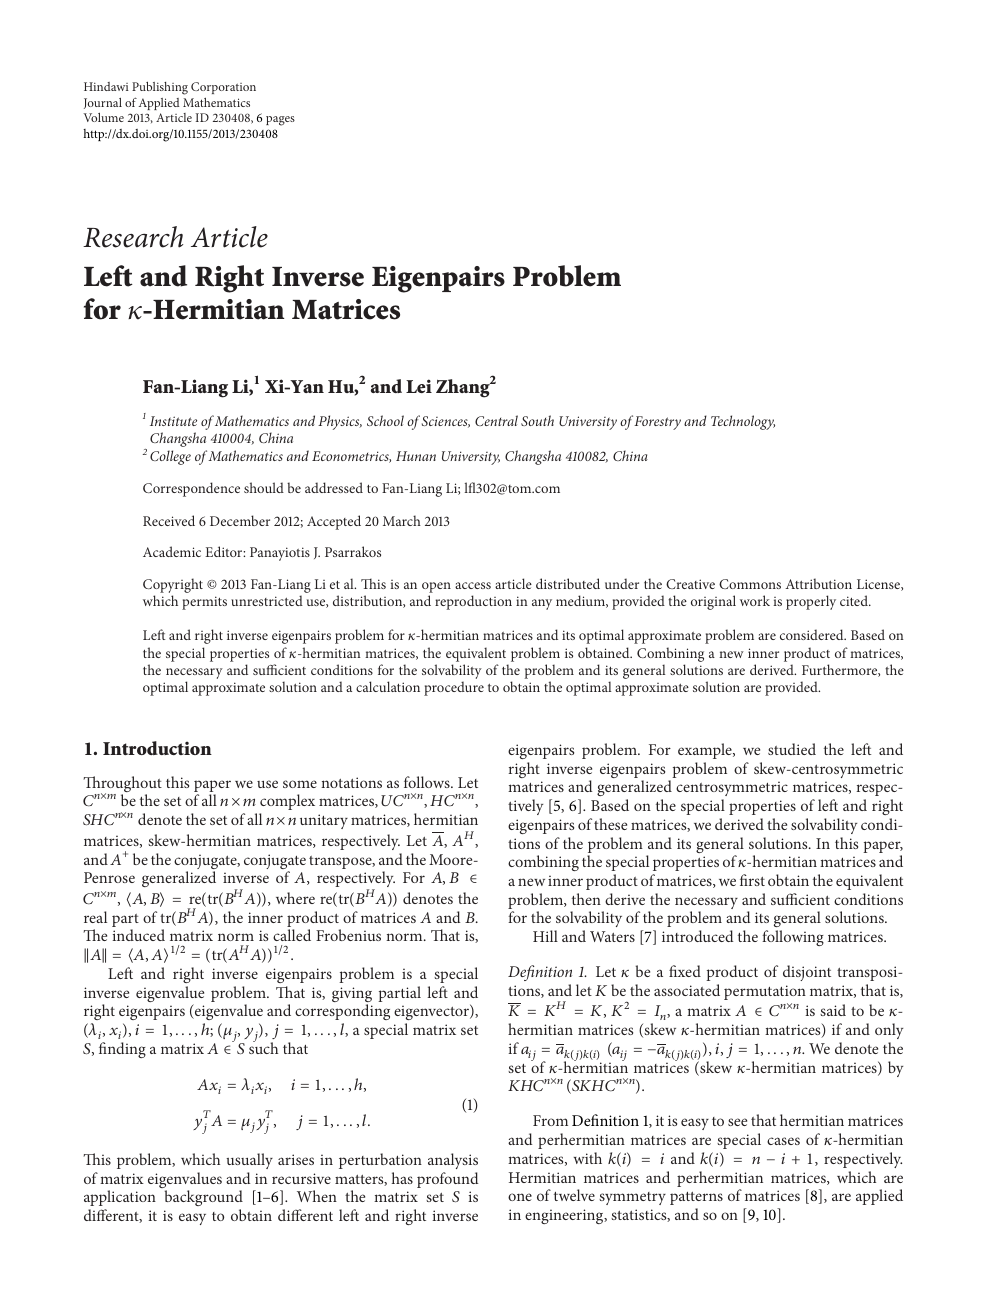 Left and Right Inverse Eigenpairs Problem for -Hermitian